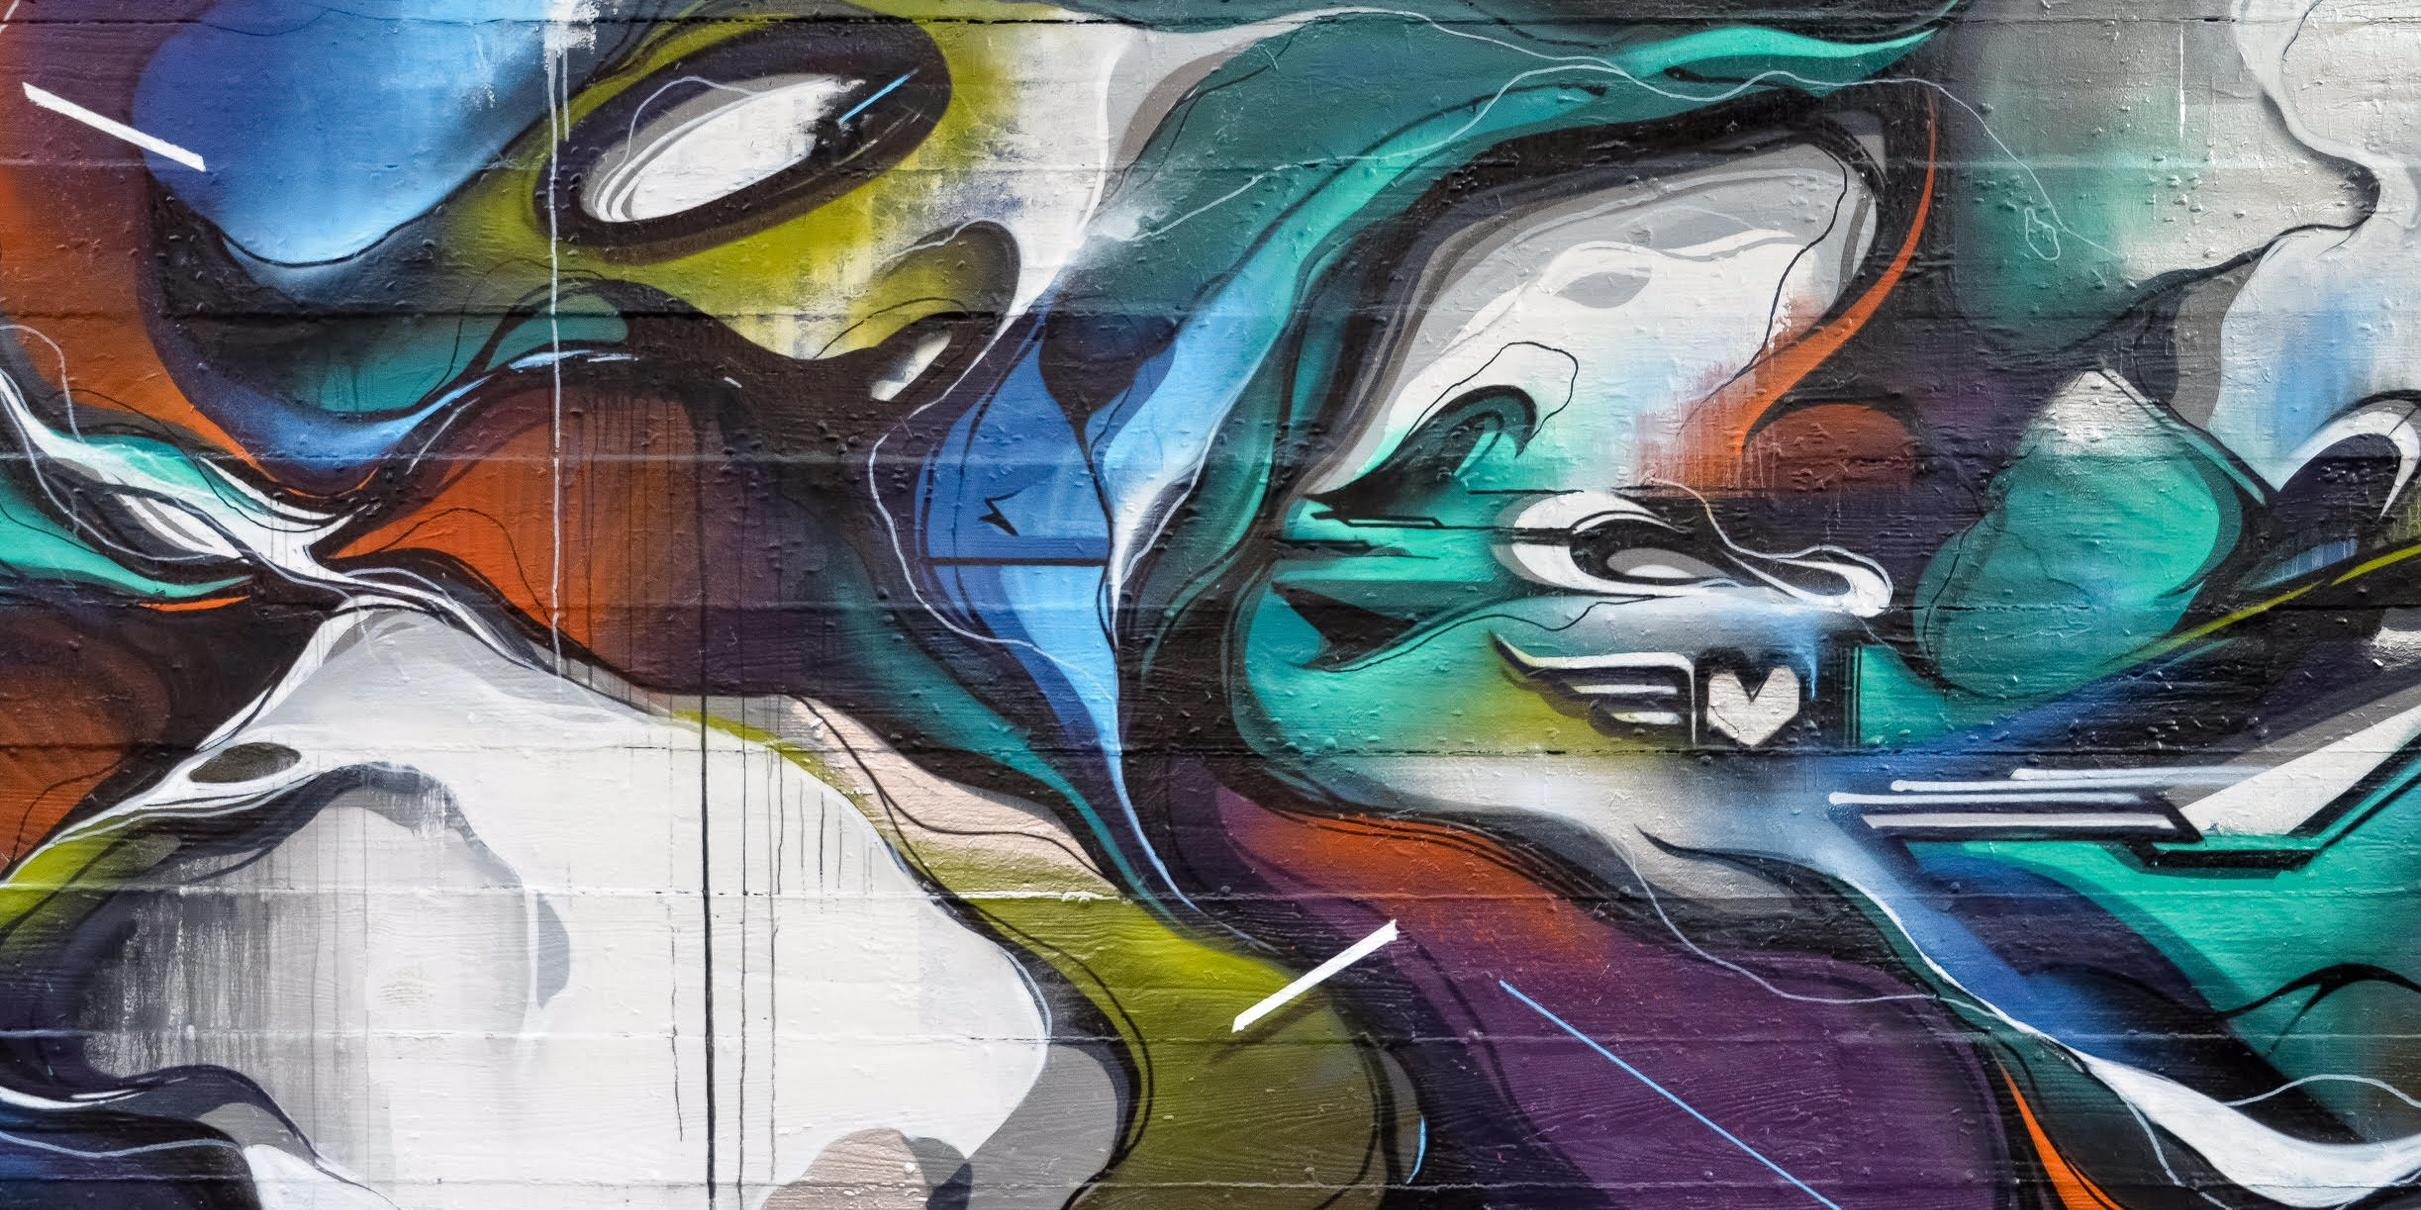 A work by Does - Chicago usa mural detail 2